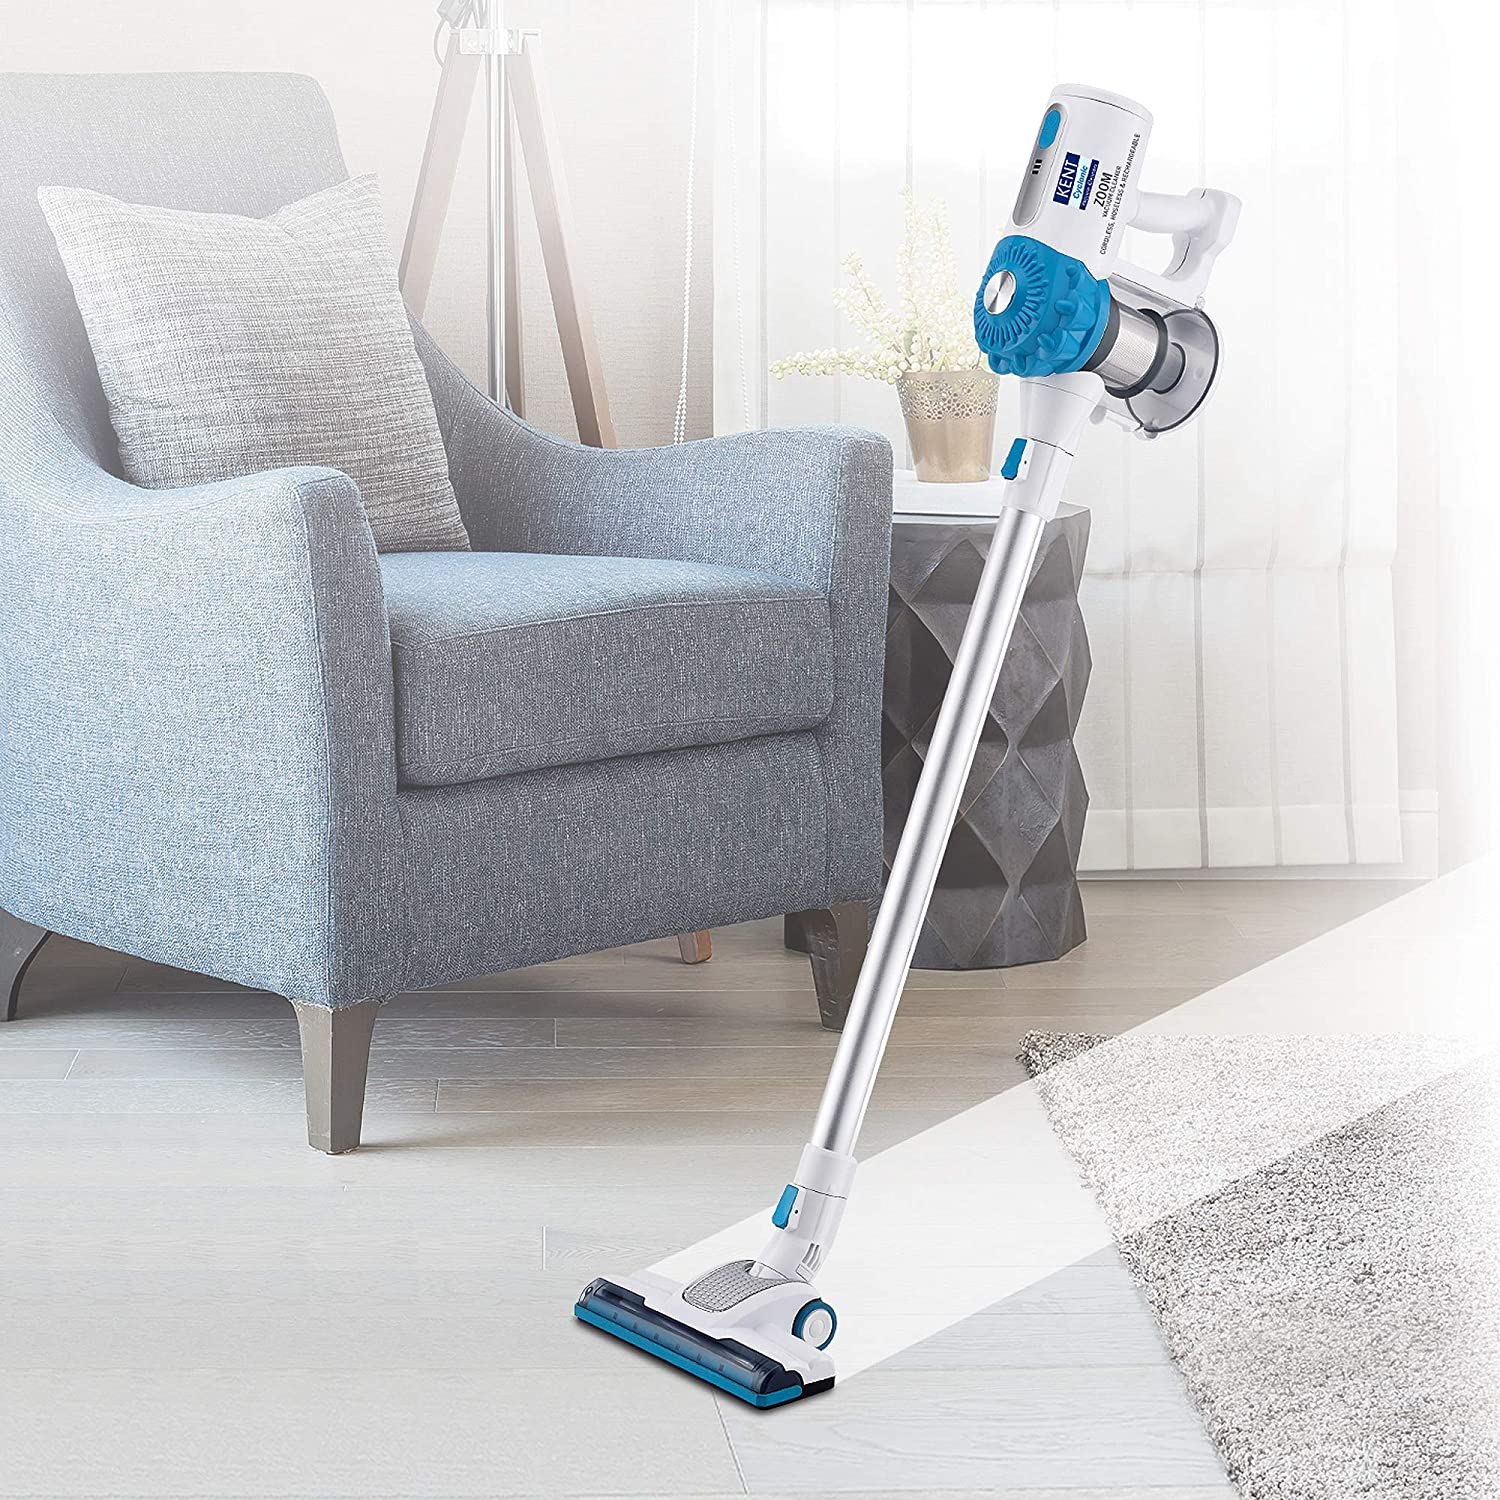 Kent Zoom Vacuum Cleaner 130 W for ₹6,749